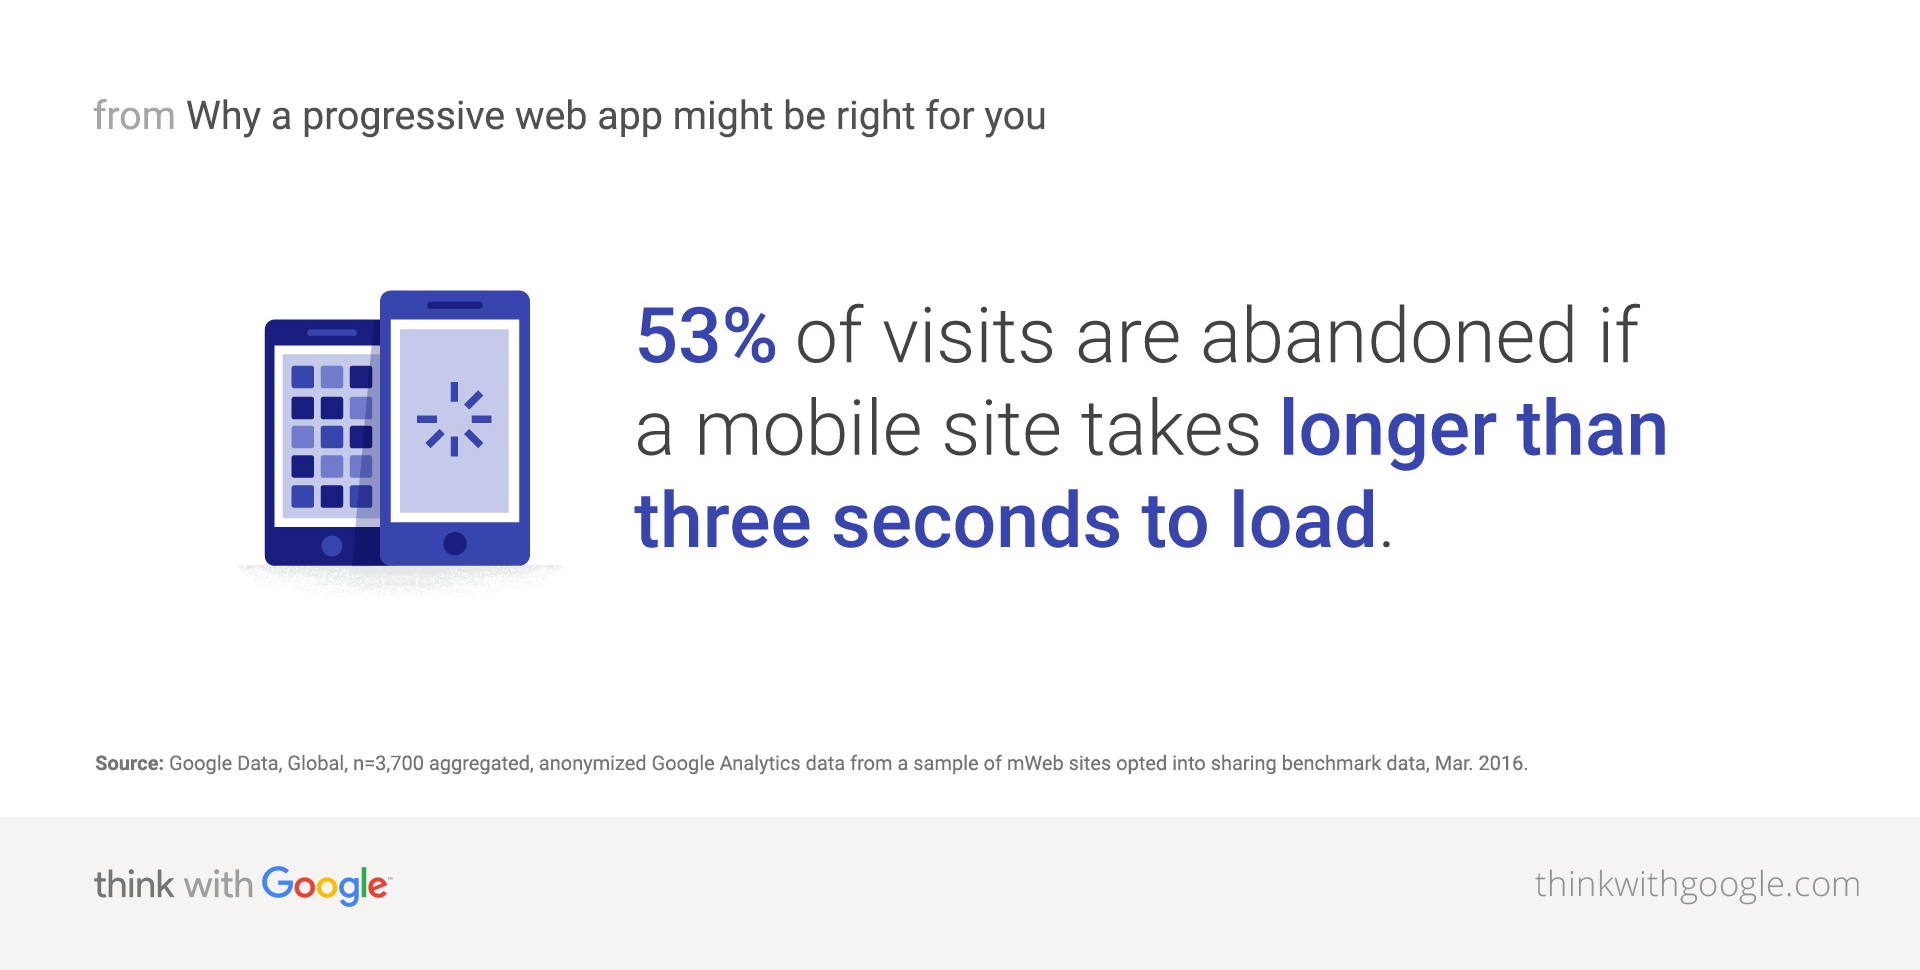 53 percent of visits are abandoned if a mobile site takes longer thatn three seconds to load